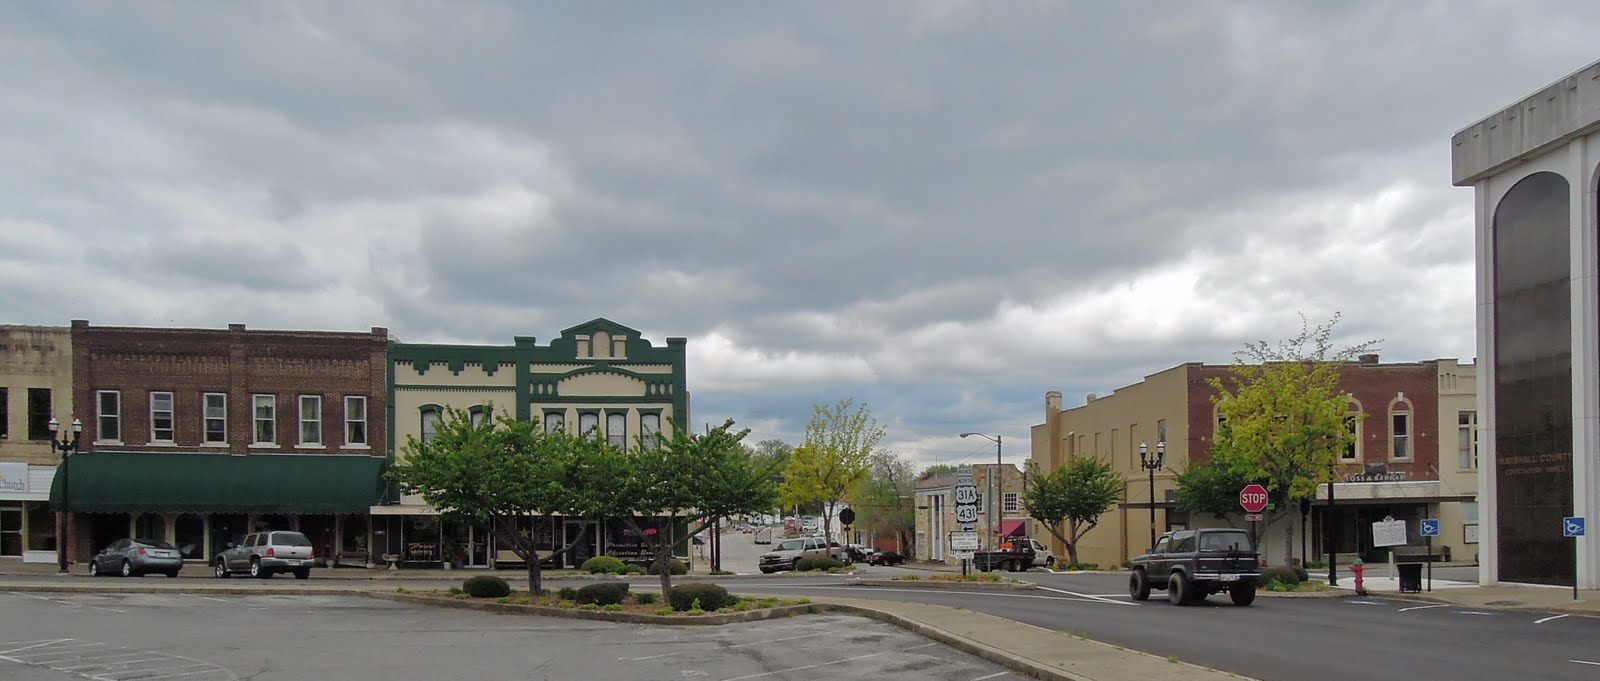 Lewisburg (TN) United States  city photos gallery : Email This BlogThis! Share to Twitter Share to Facebook Share to ...